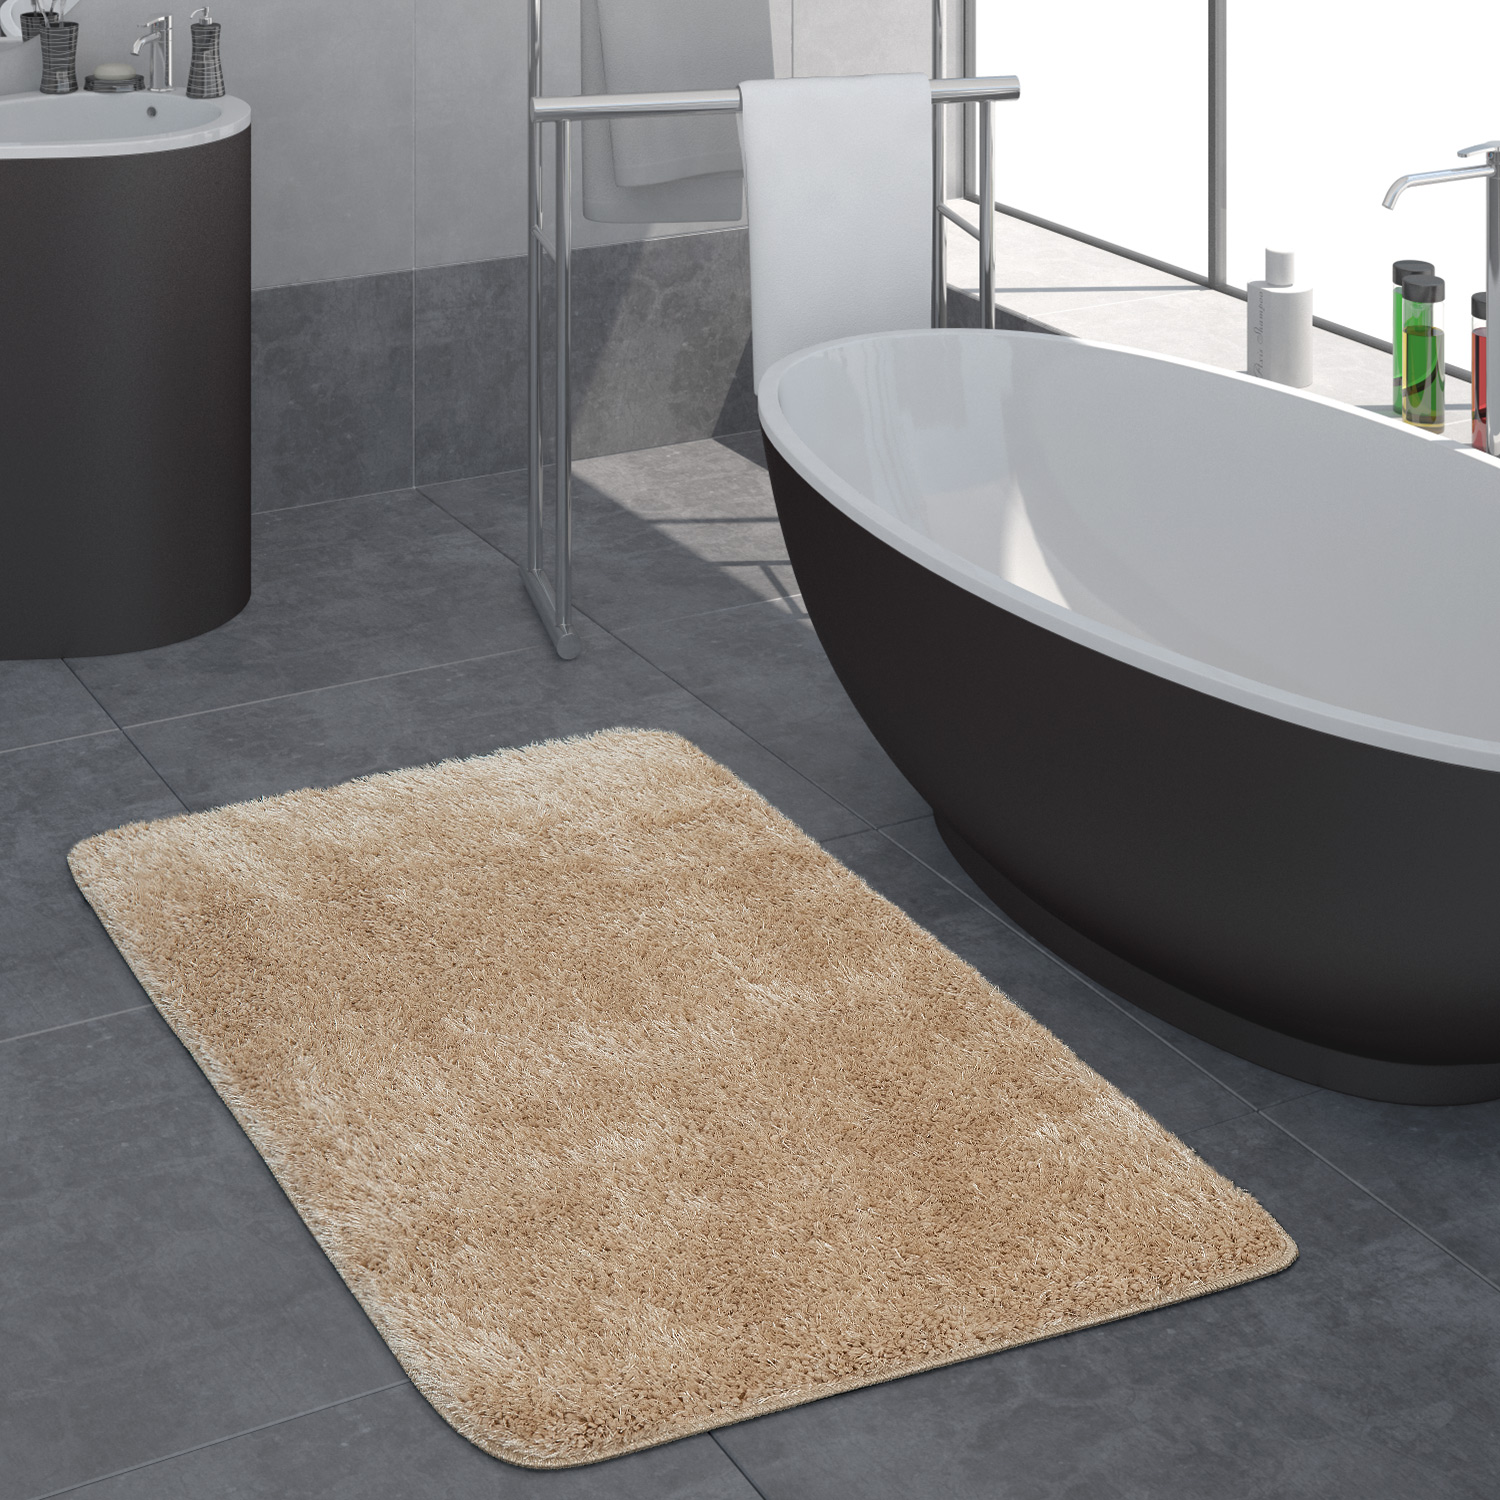 Modern Deep Pile Bathroom Rug One Colour Bathmat Non-Slip In Beige